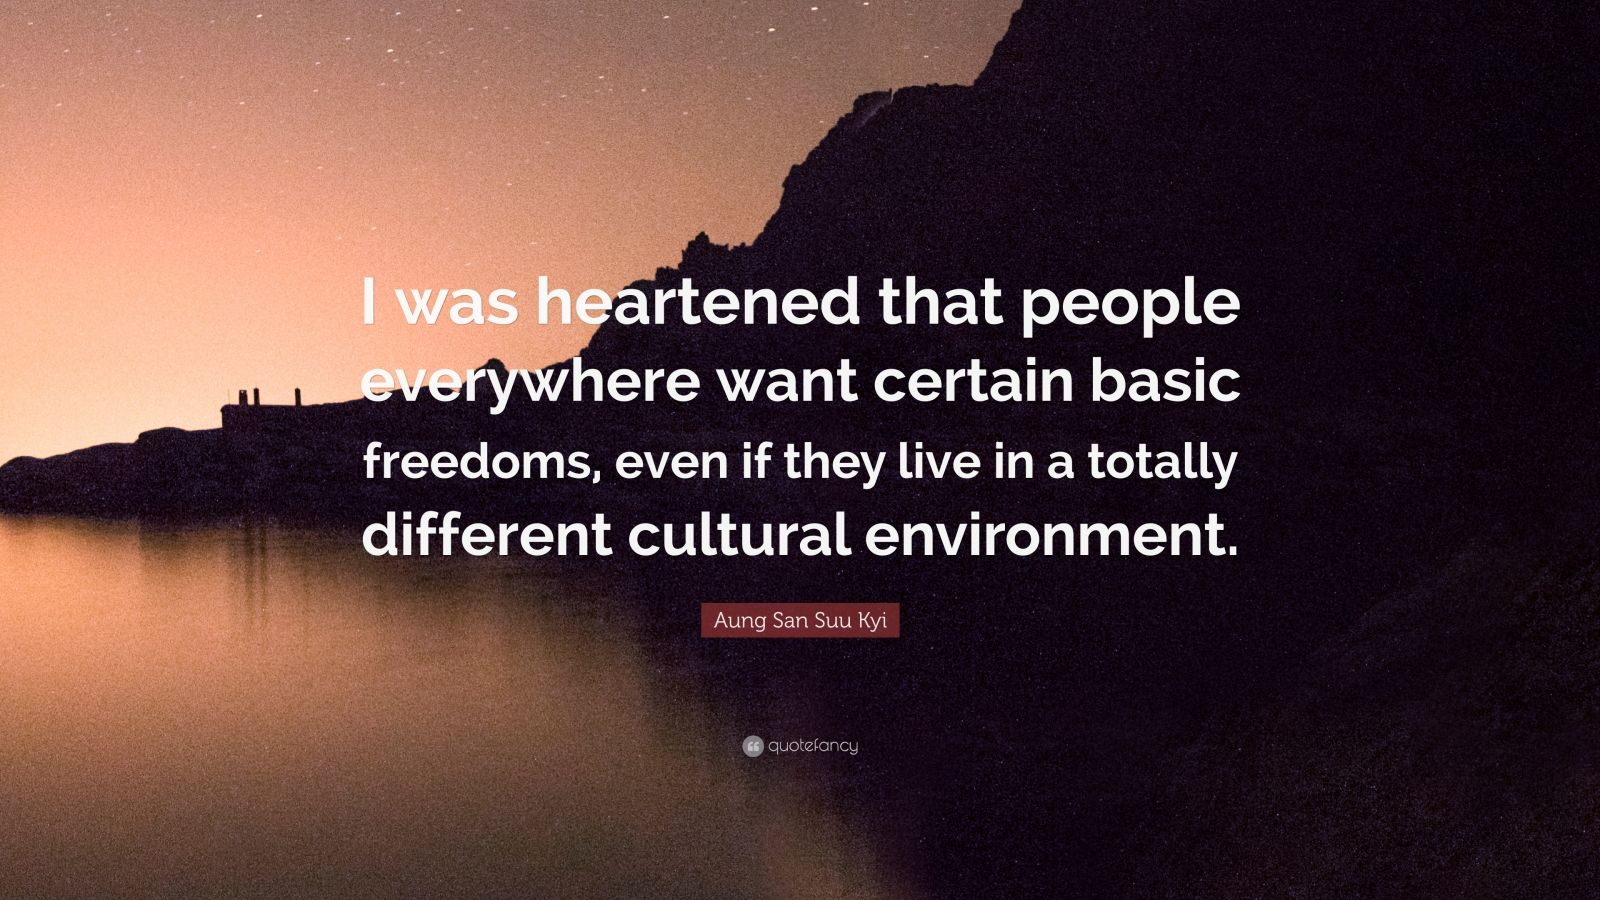 """Aung San Suu Kyi Quote: """"I was heartened that people everywhere want certain basic freedoms, even if they live in a totally different cultural environment."""""""